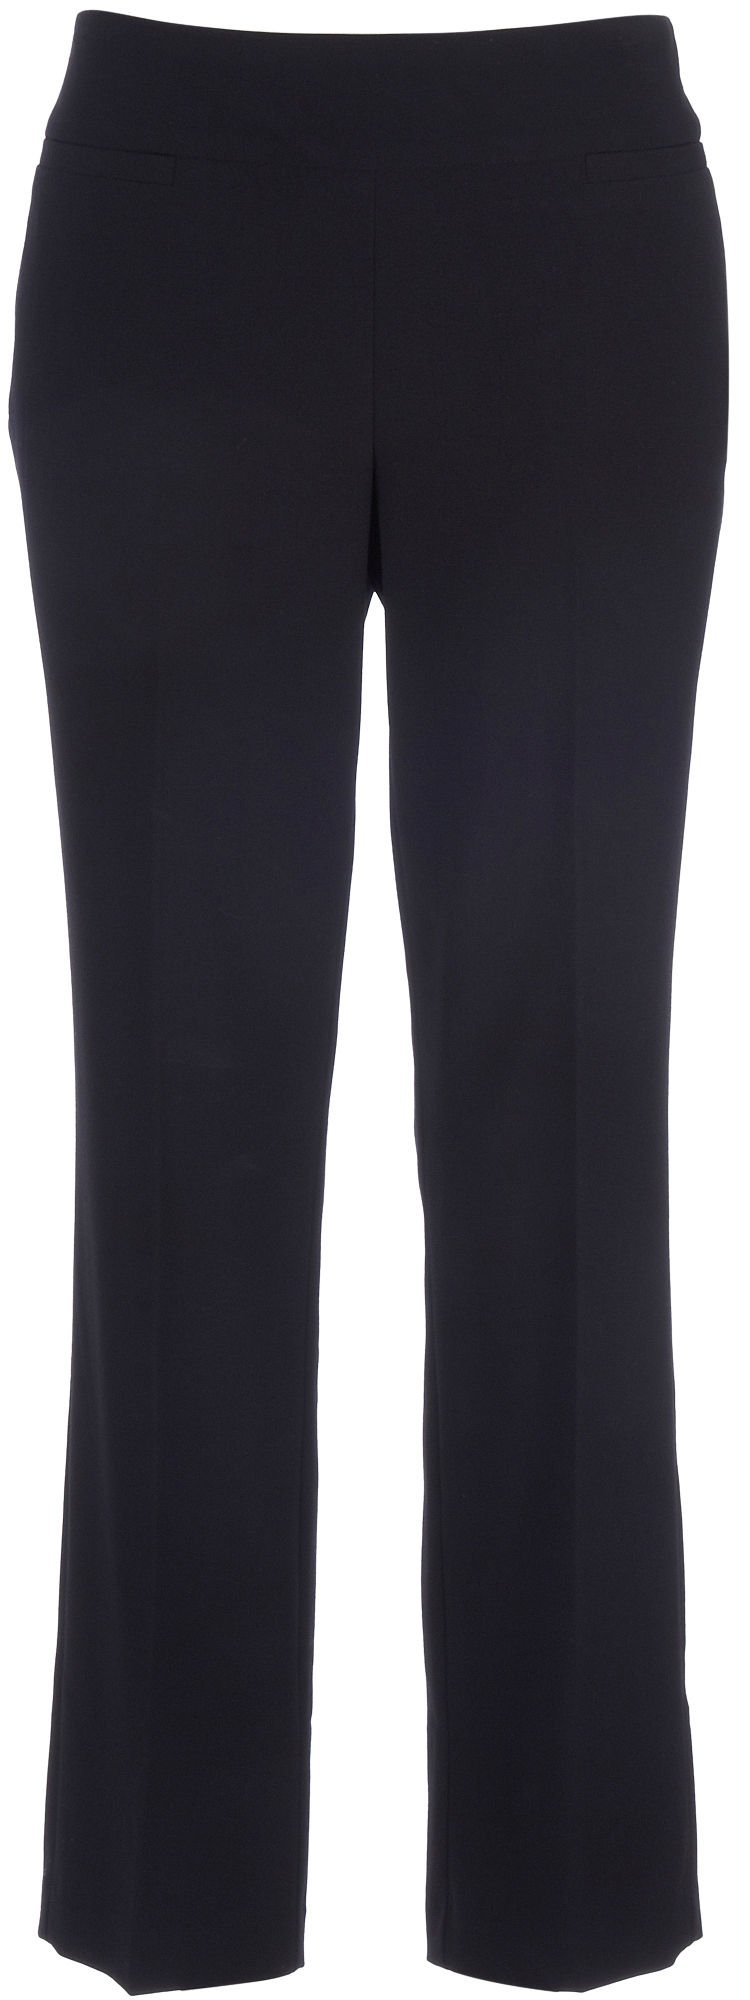 Counterparts Womens Solid Pull On Pants 12 Black